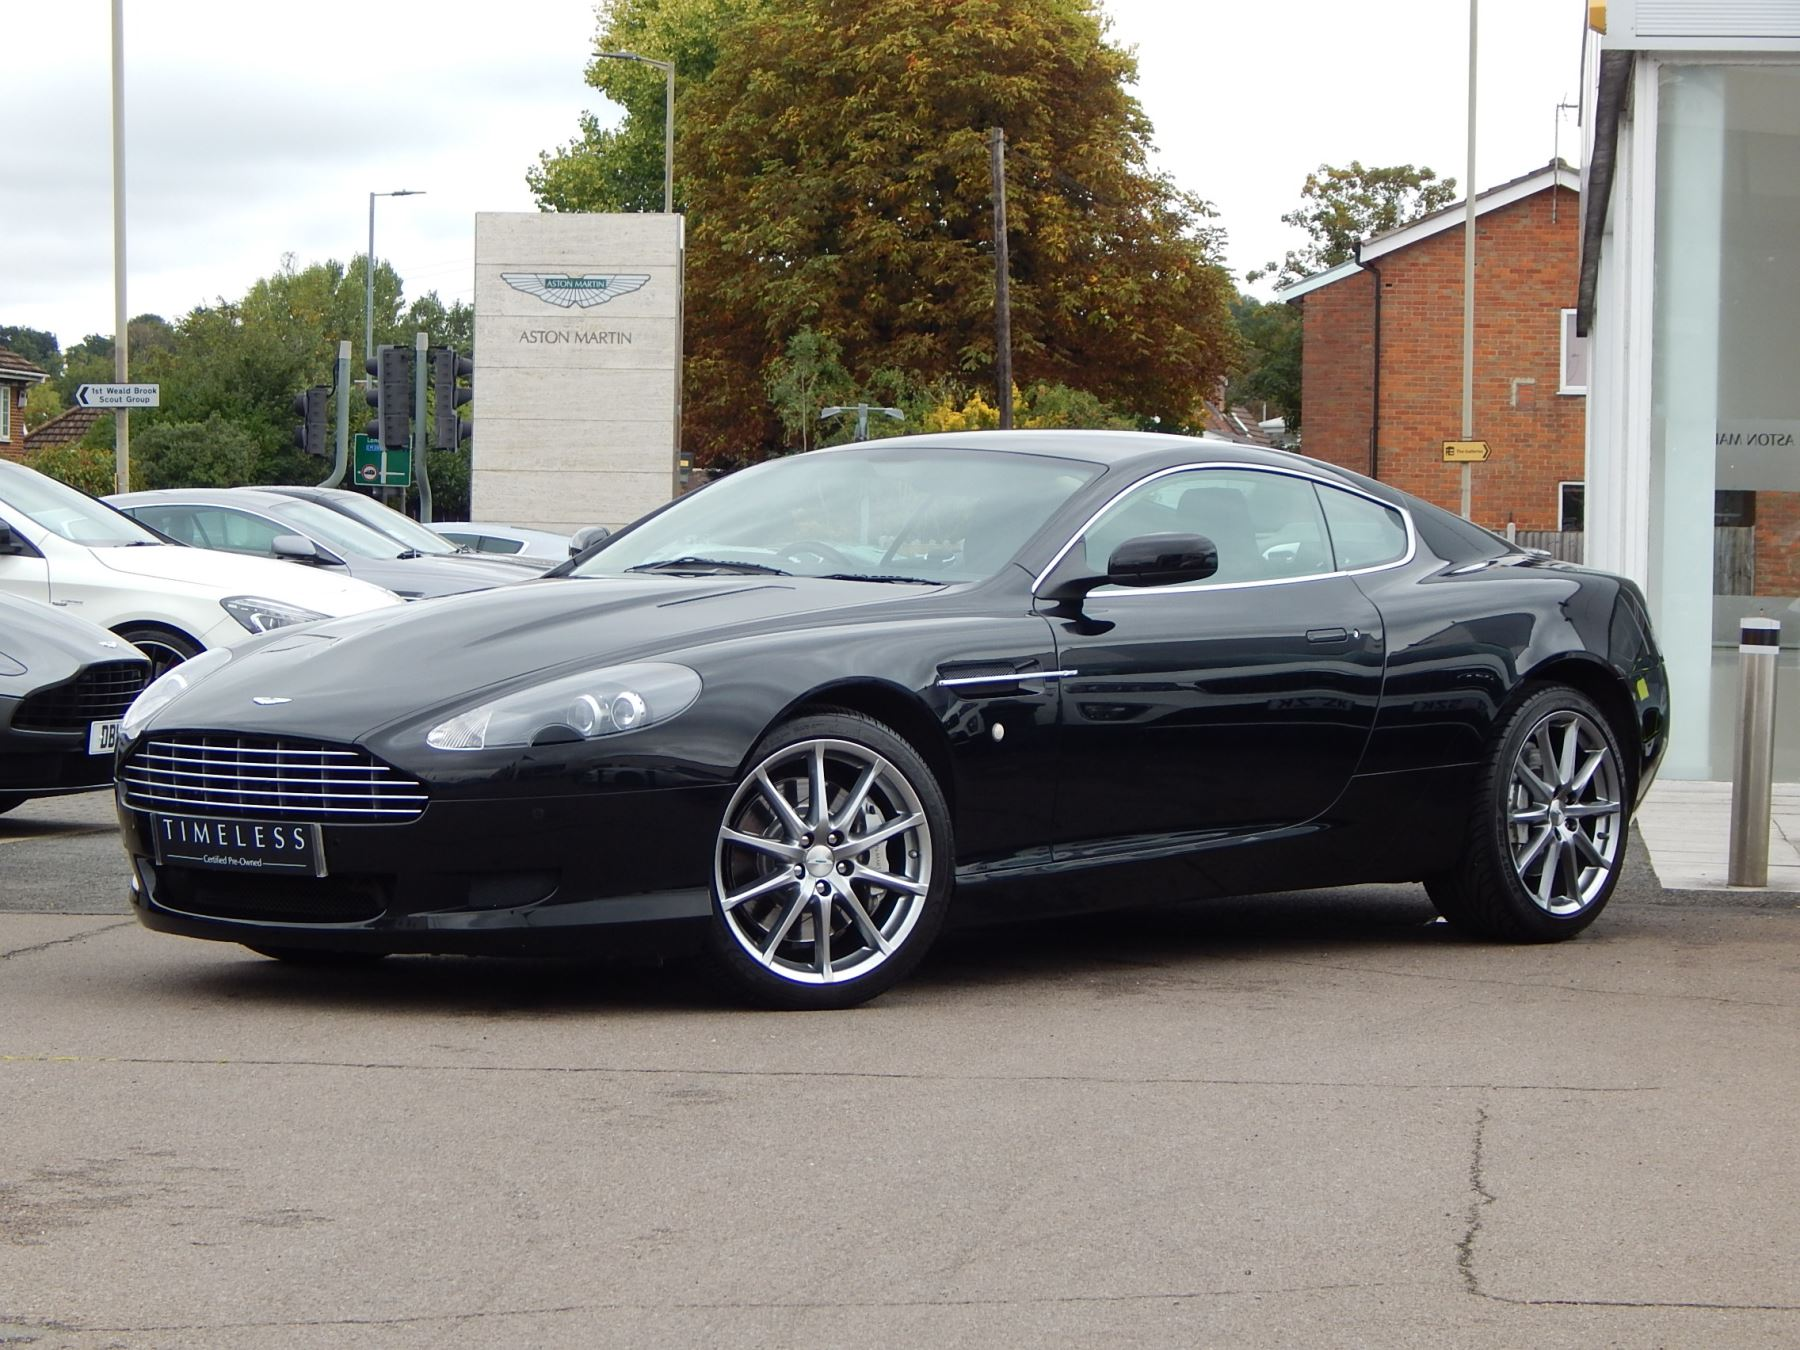 Aston Martin DB9 V12 2dr 5.9 Automatic Coupe (2009) image